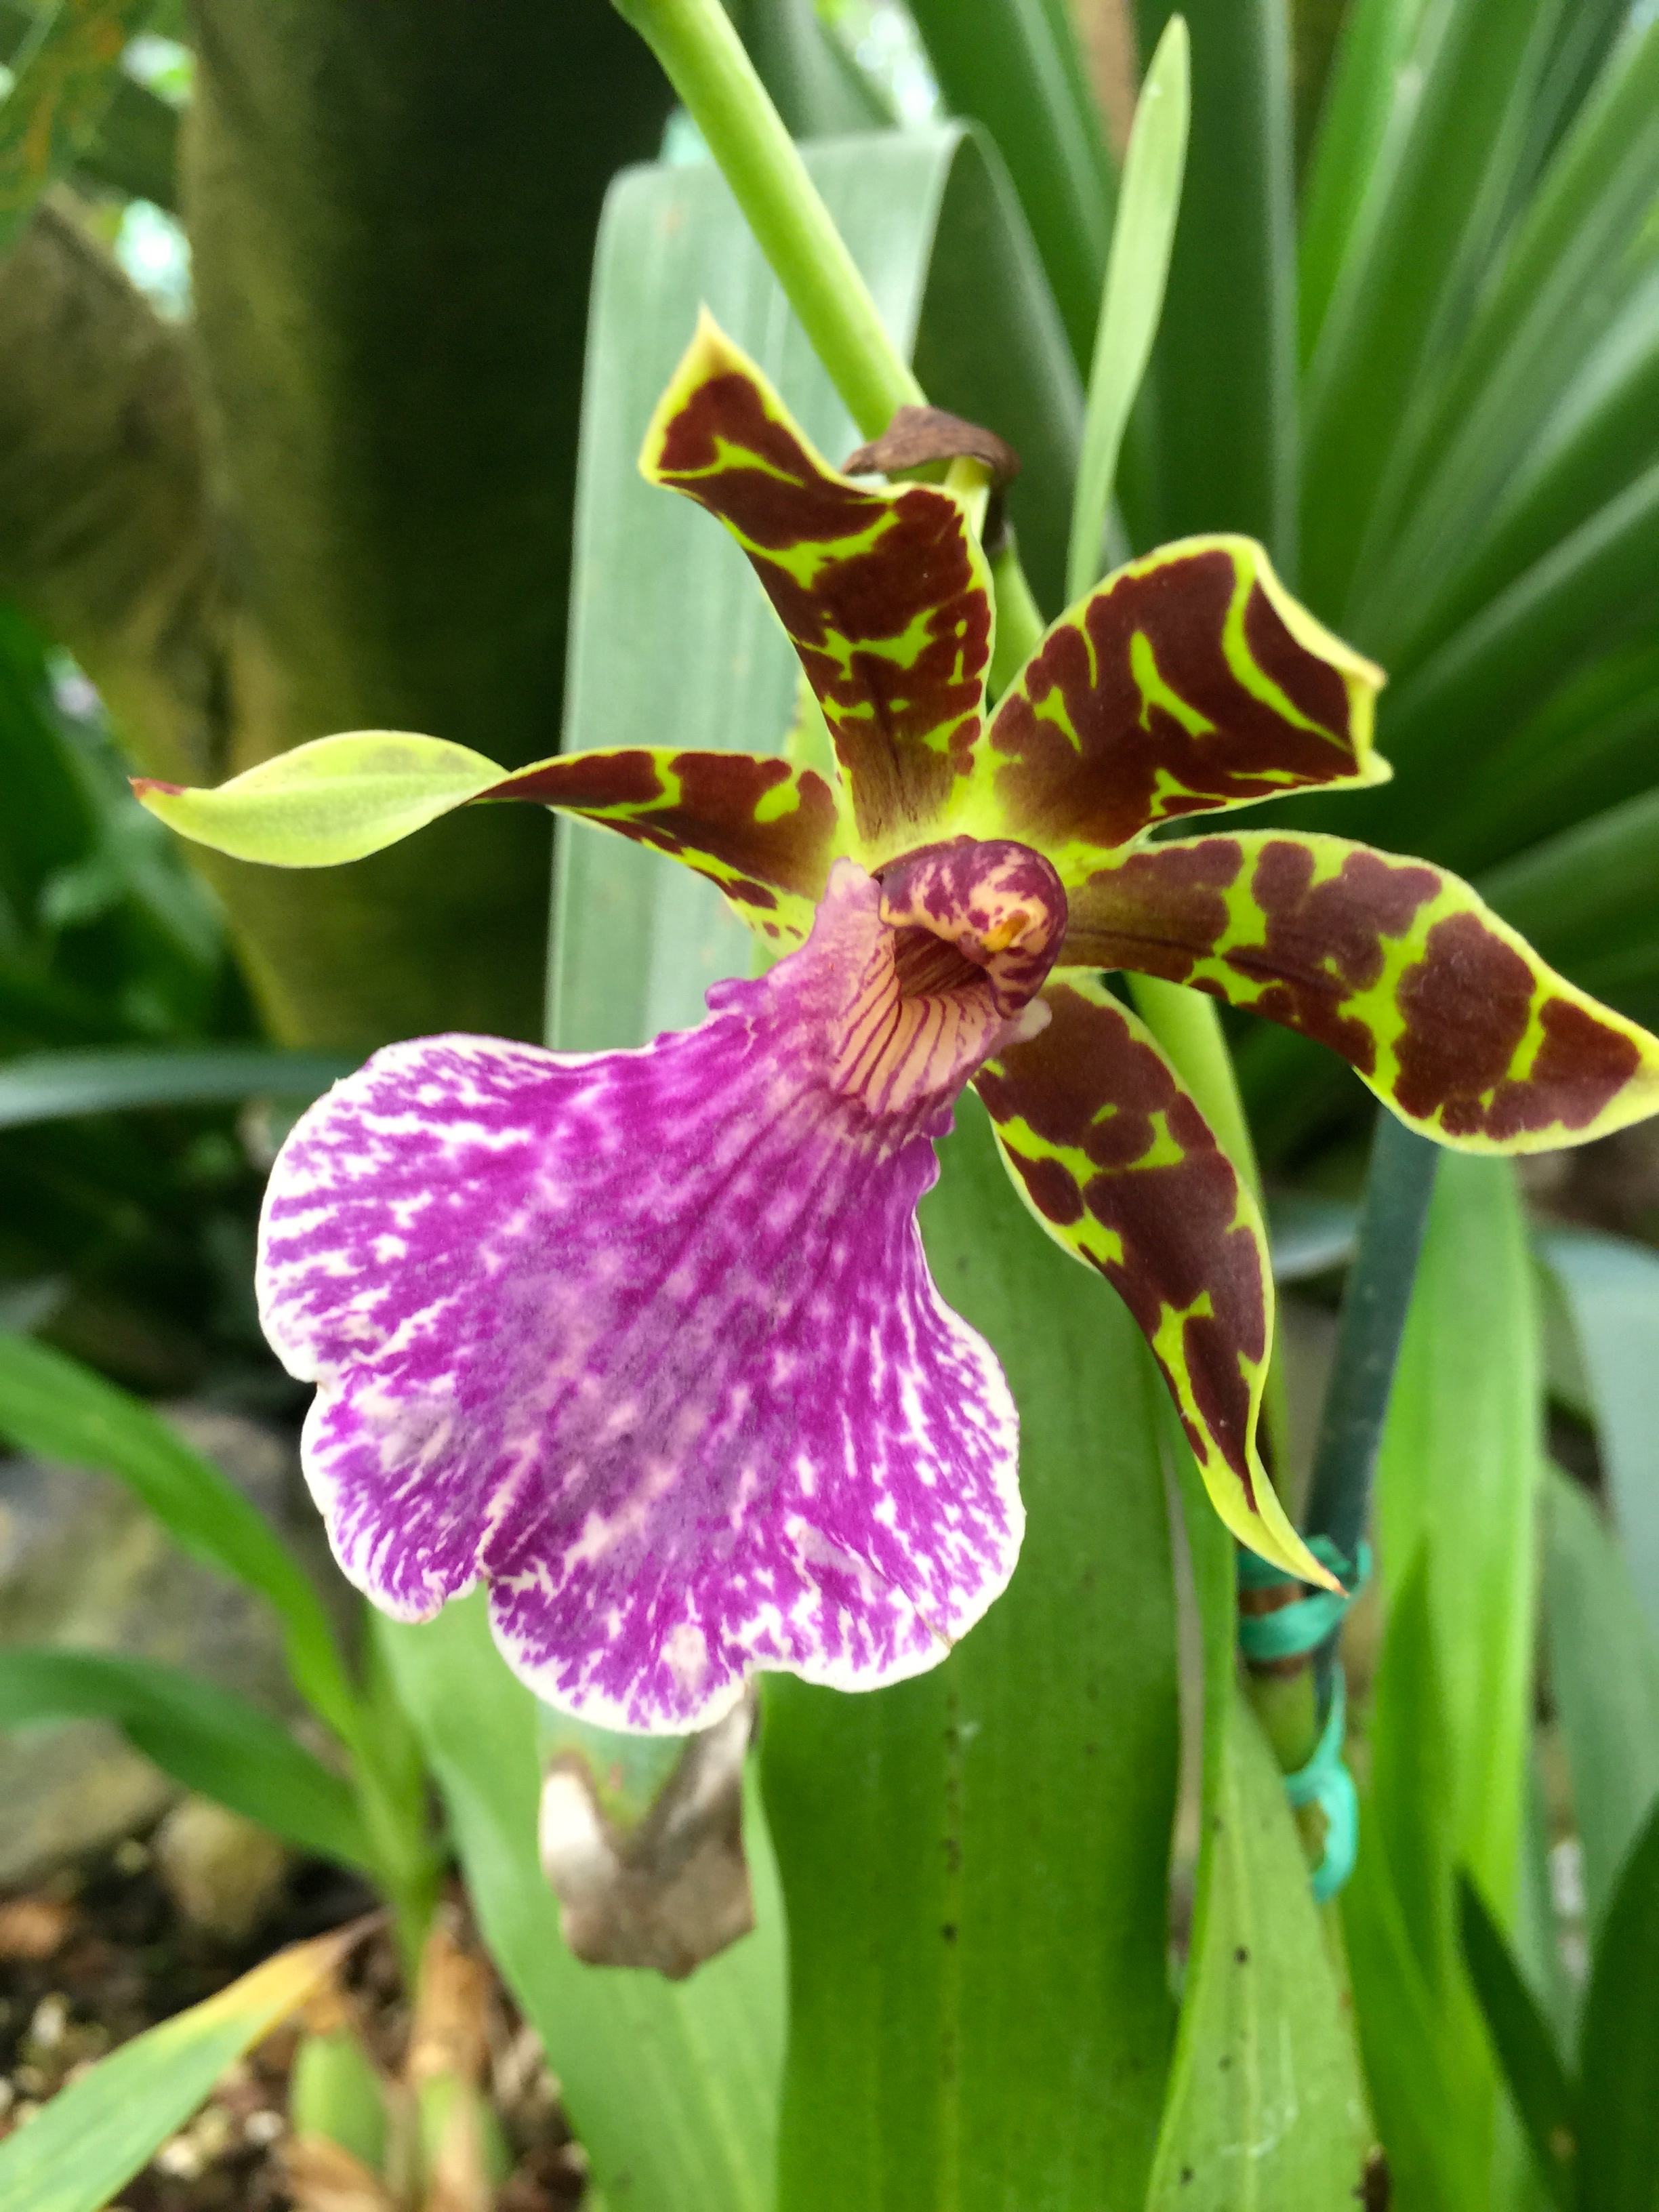 One of my favorite orchids. I have tons of photos.